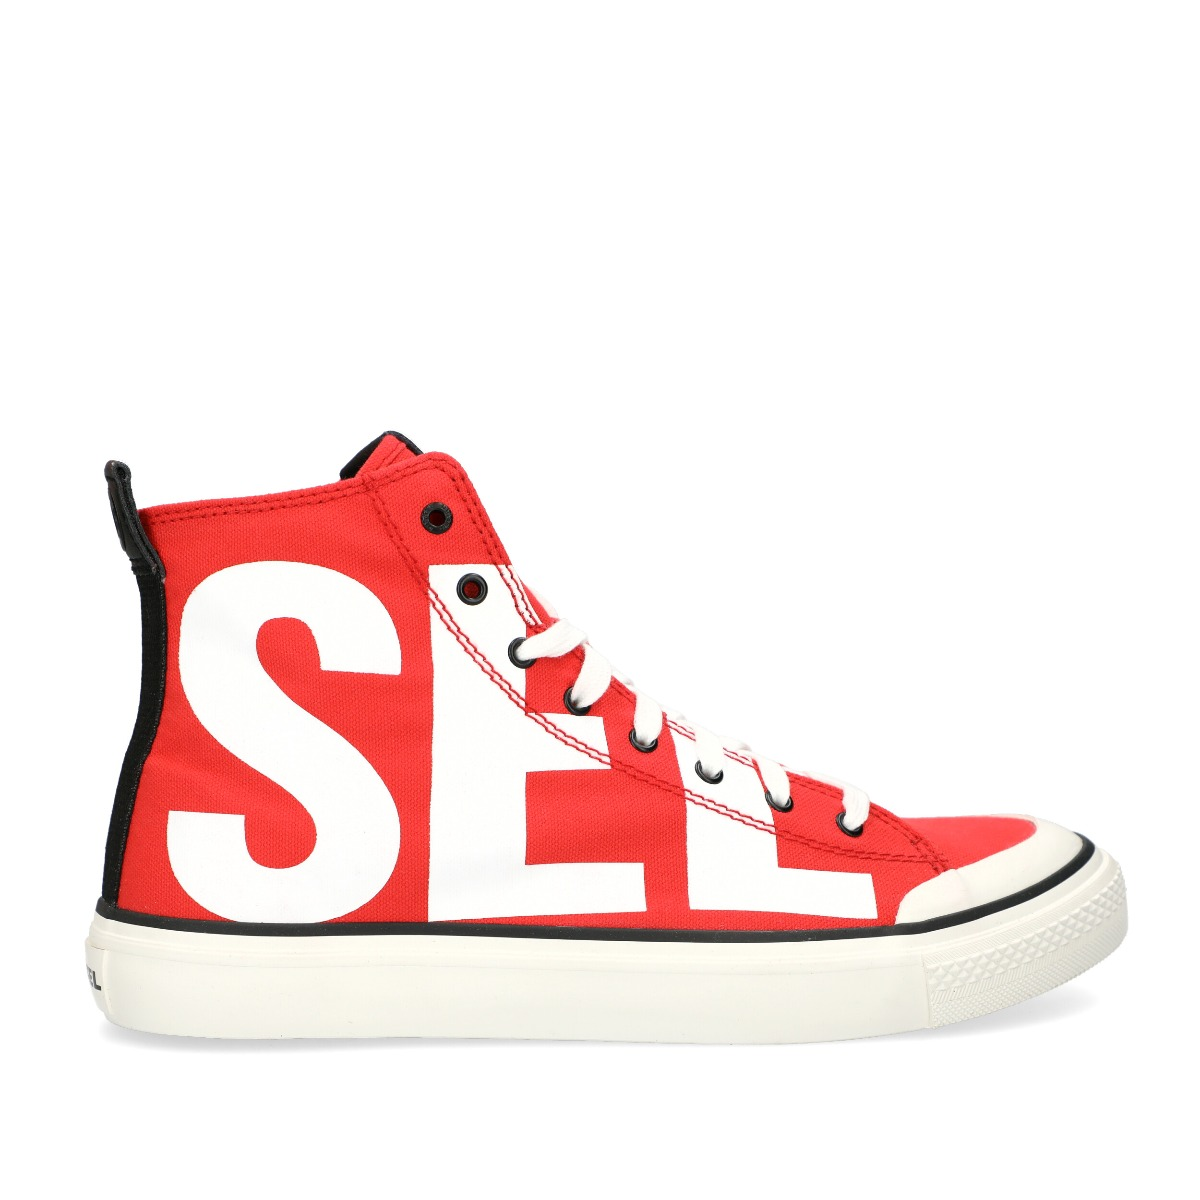 S-Astico Sneakers - Red